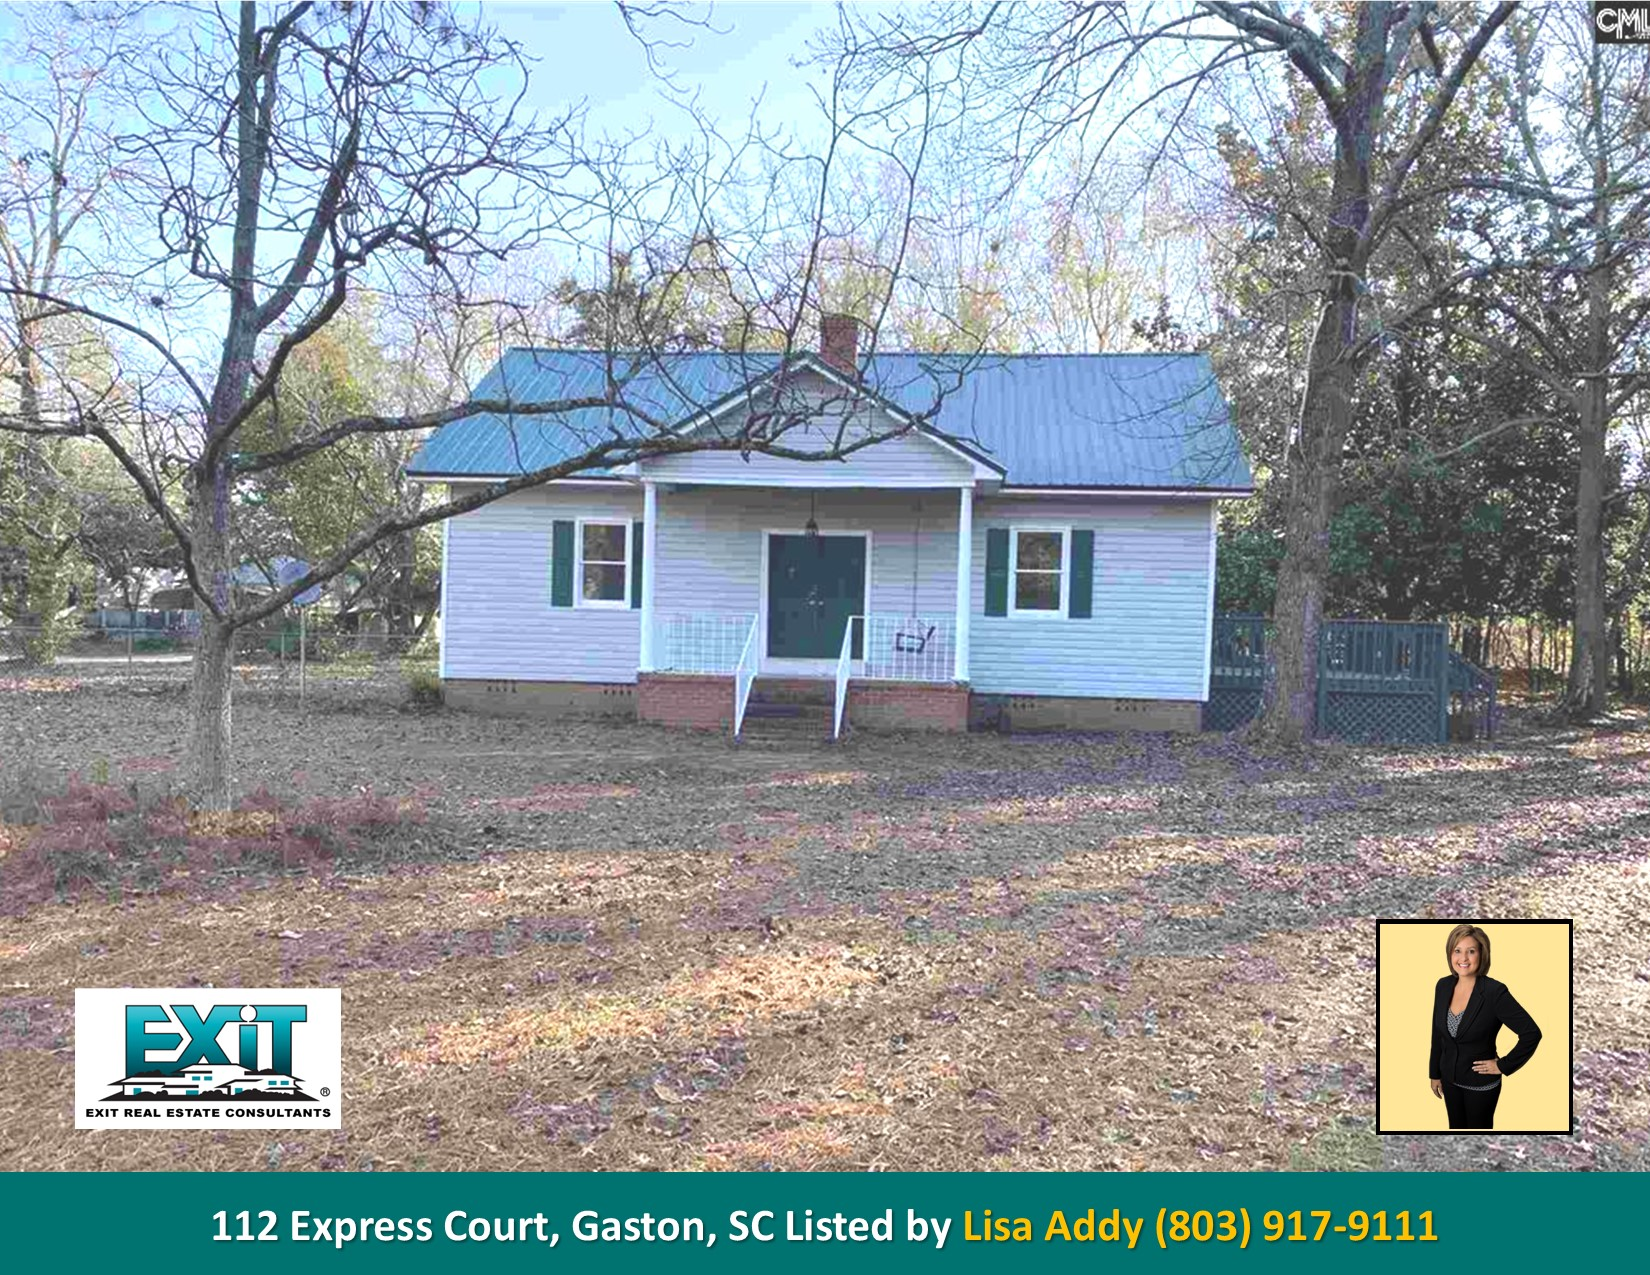 Just listed in Gaston